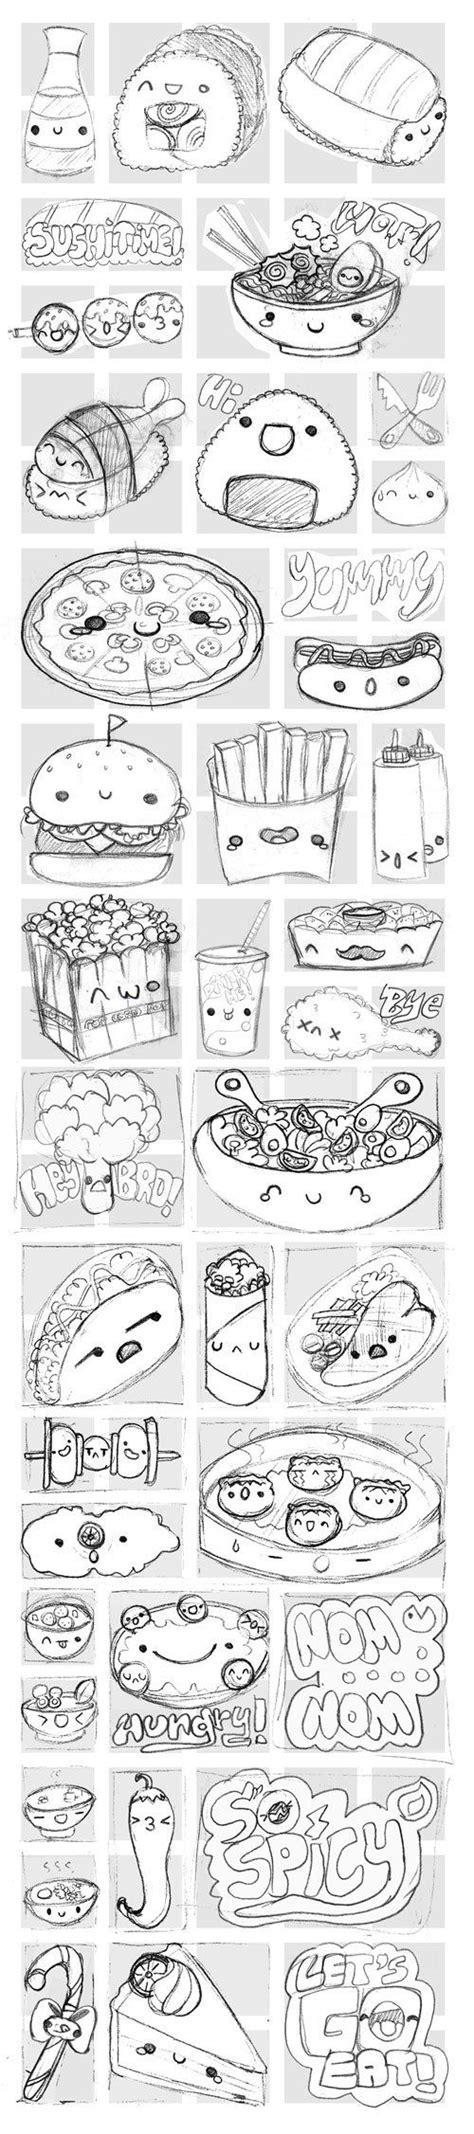 how to use doodle on viber viber s kawaii food stickers cool crafts